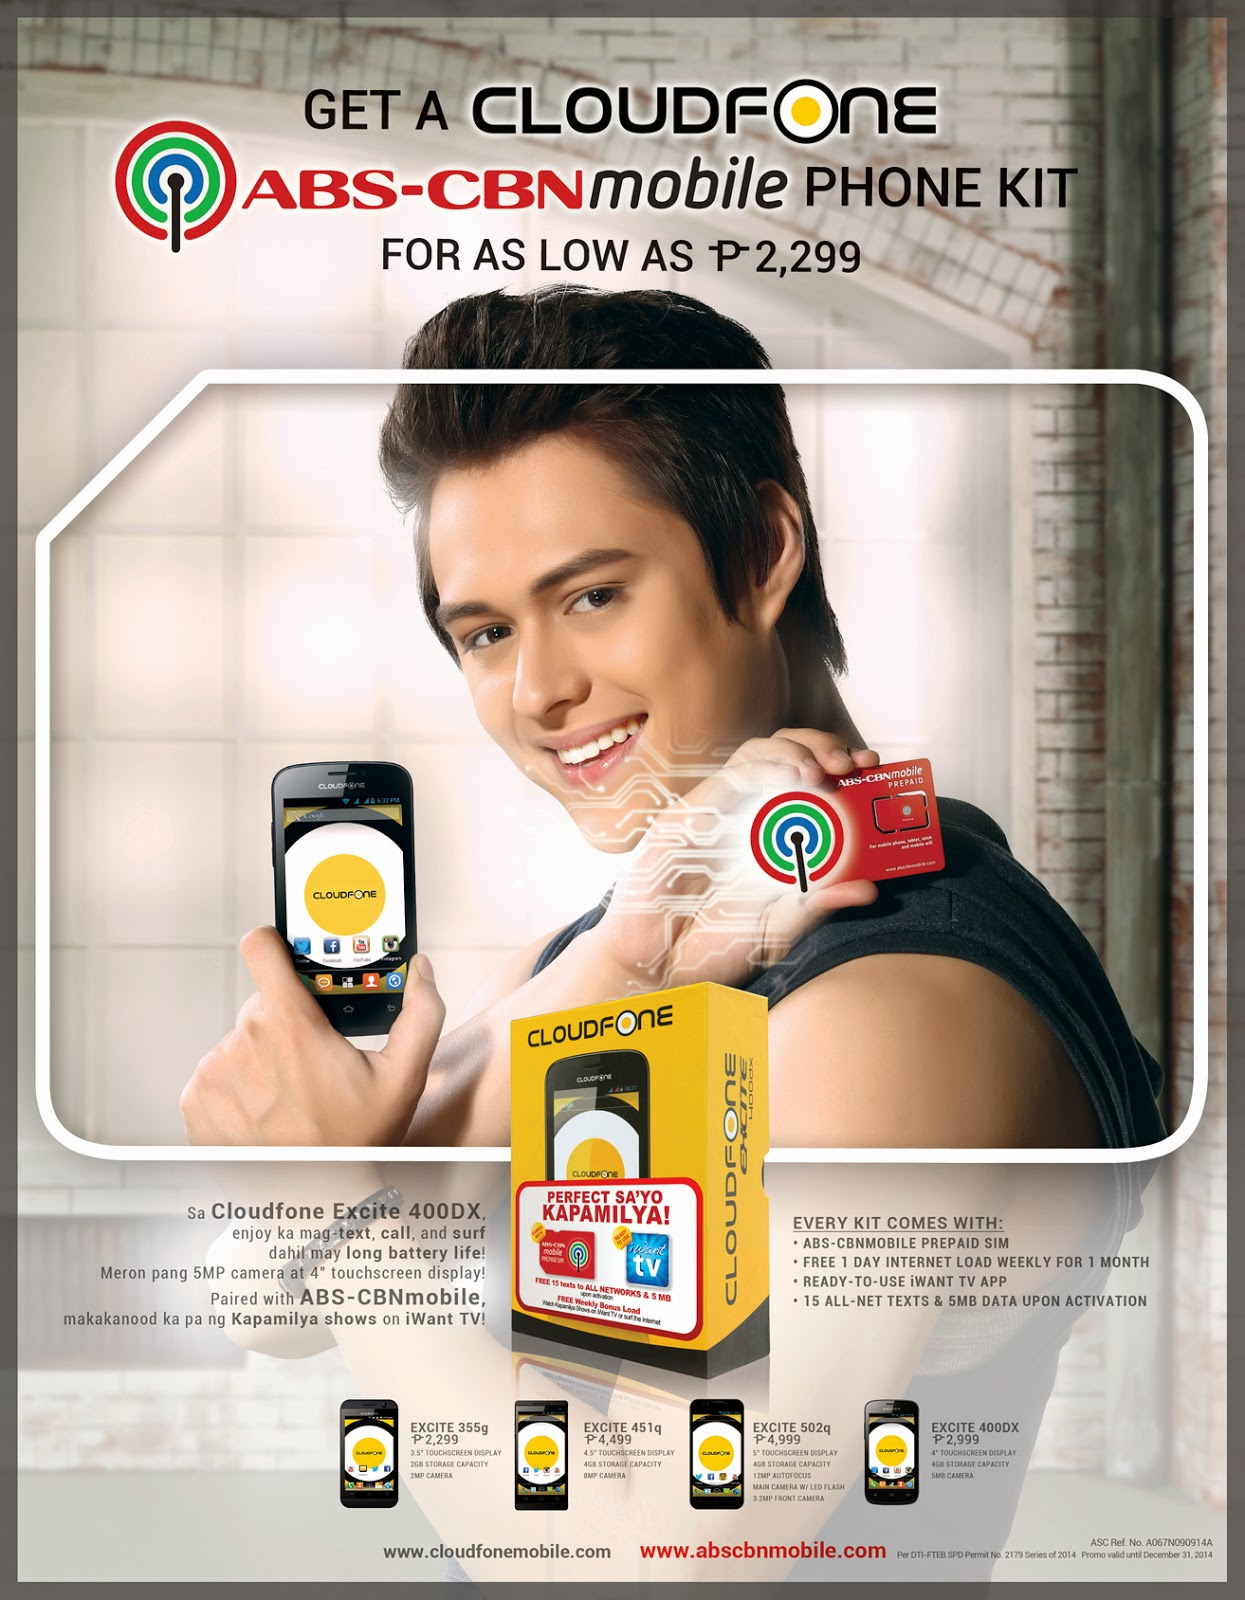 Enrique Gil for ABS-CBNmobile